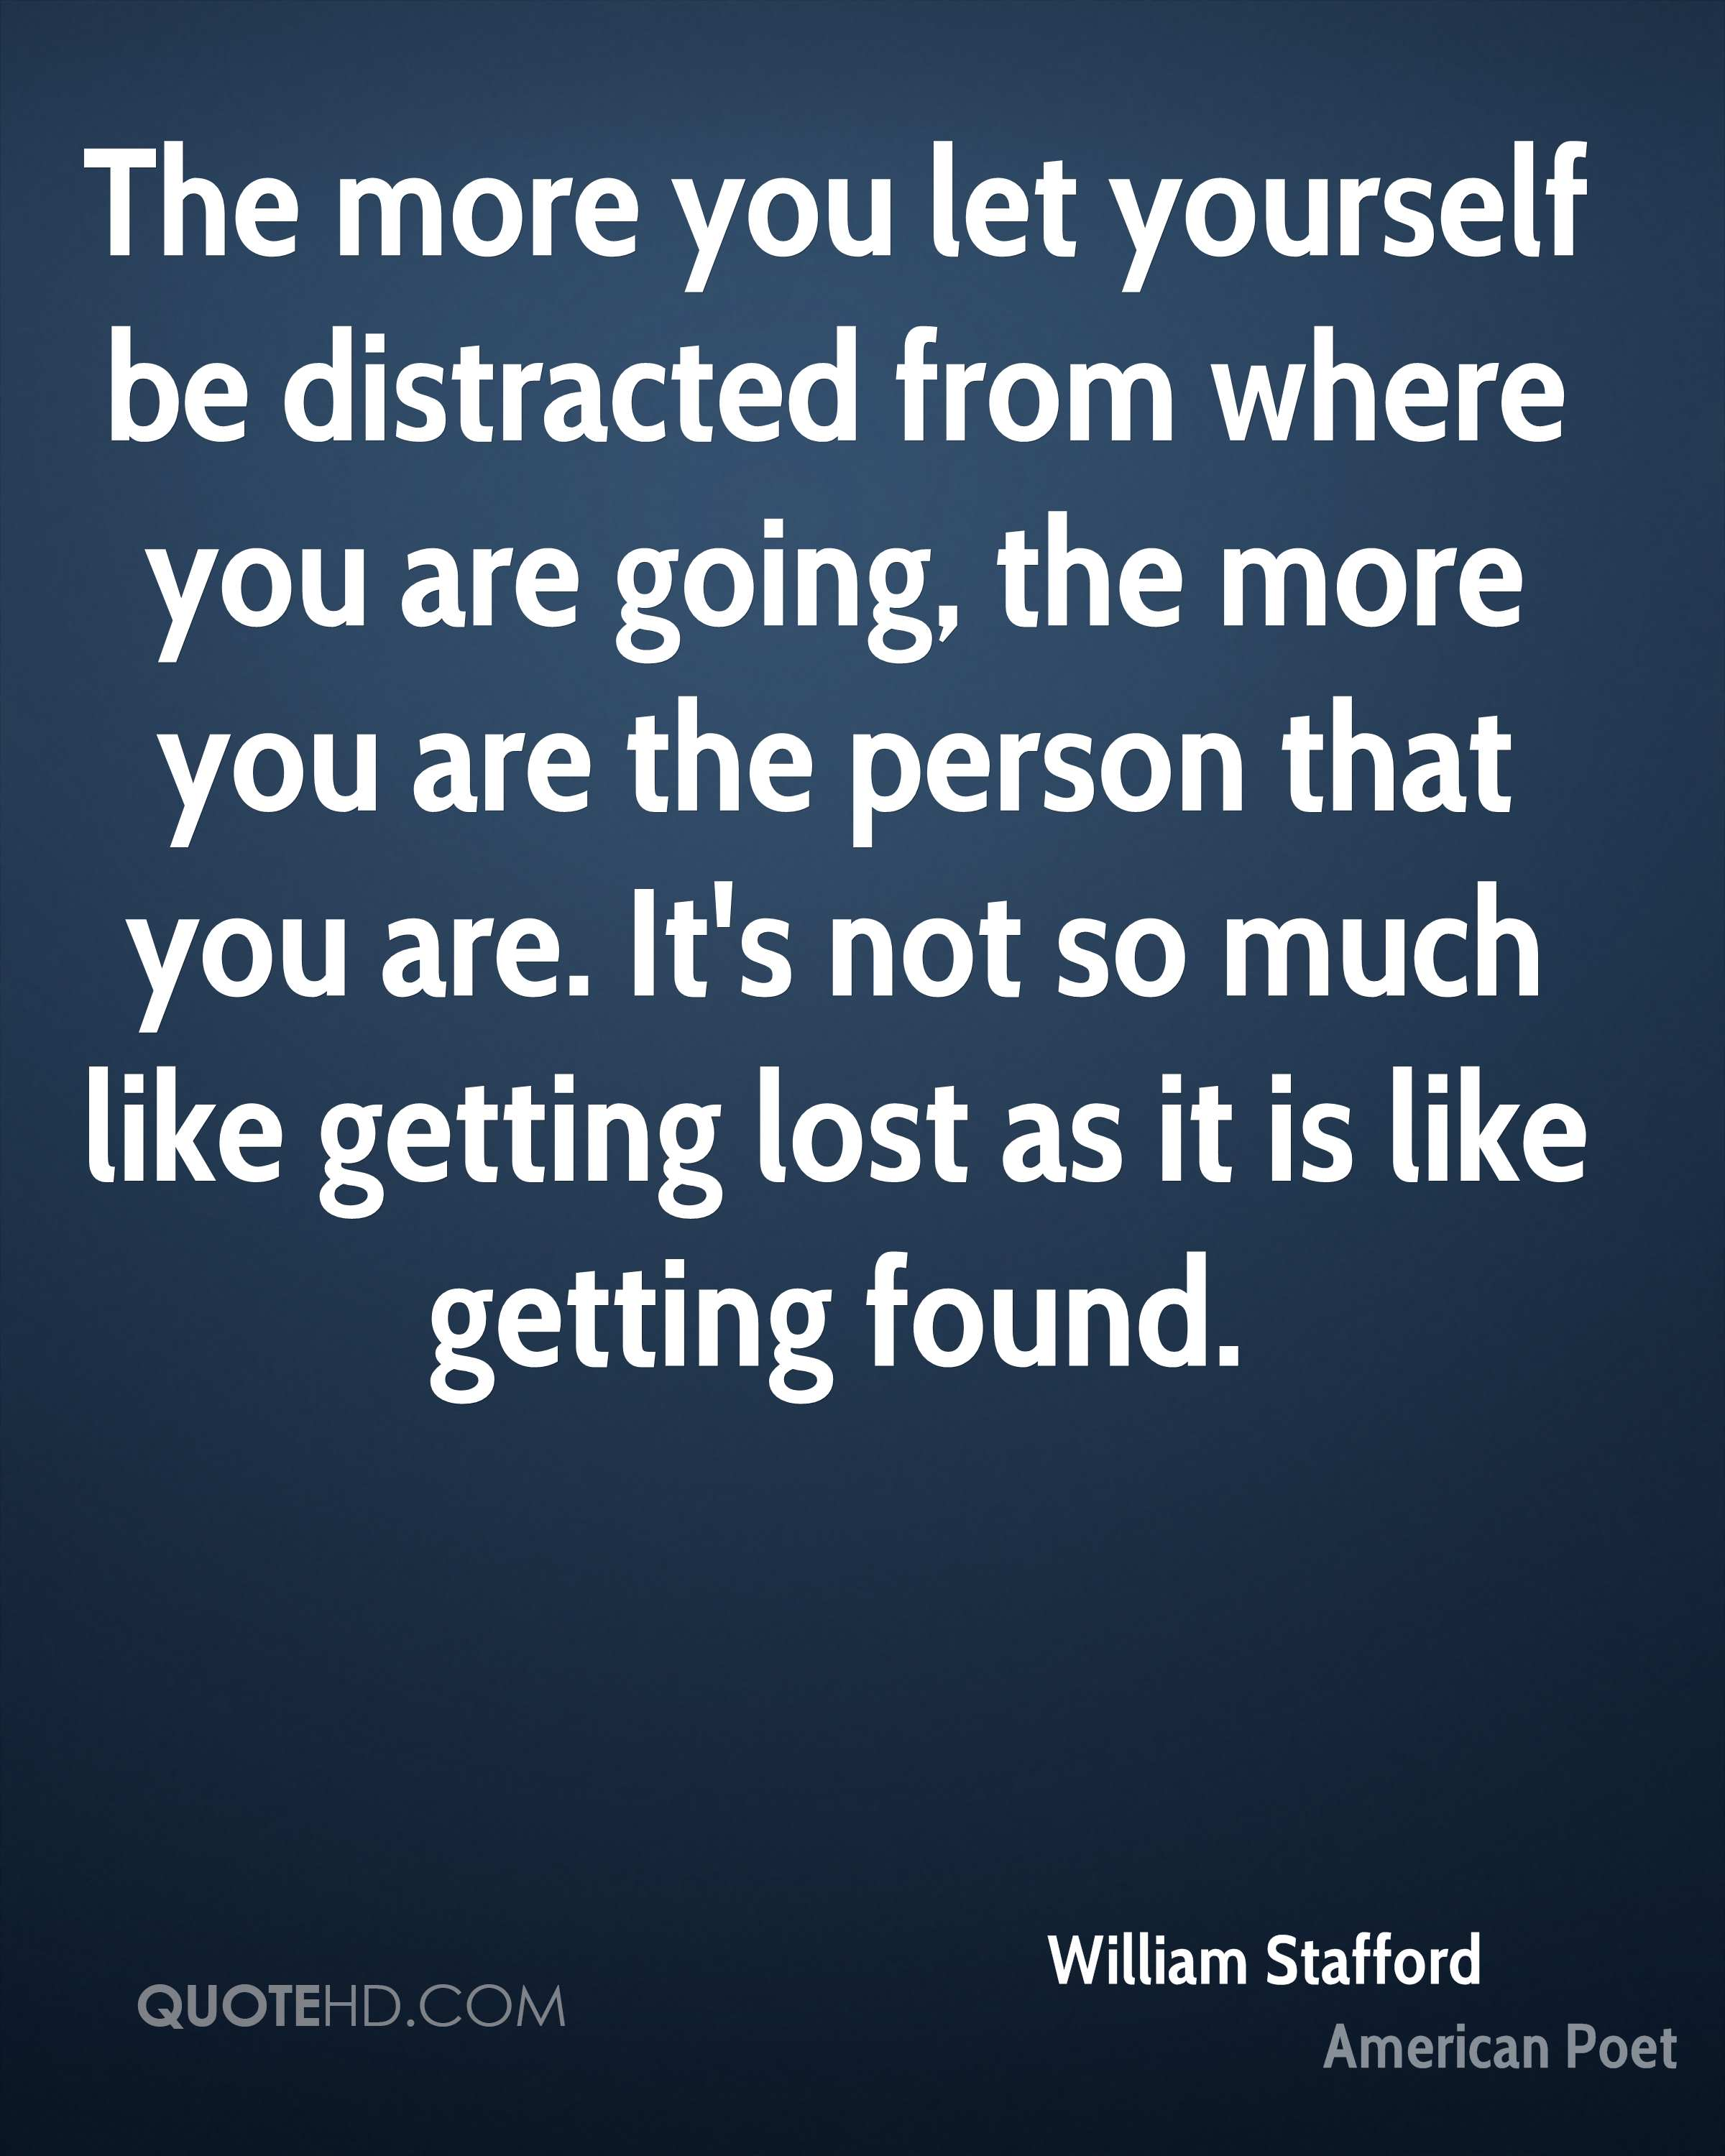 The more you let yourself be distracted from where you are going, the more you are the person that you are. It's not so much like getting lost as it is like getting found.